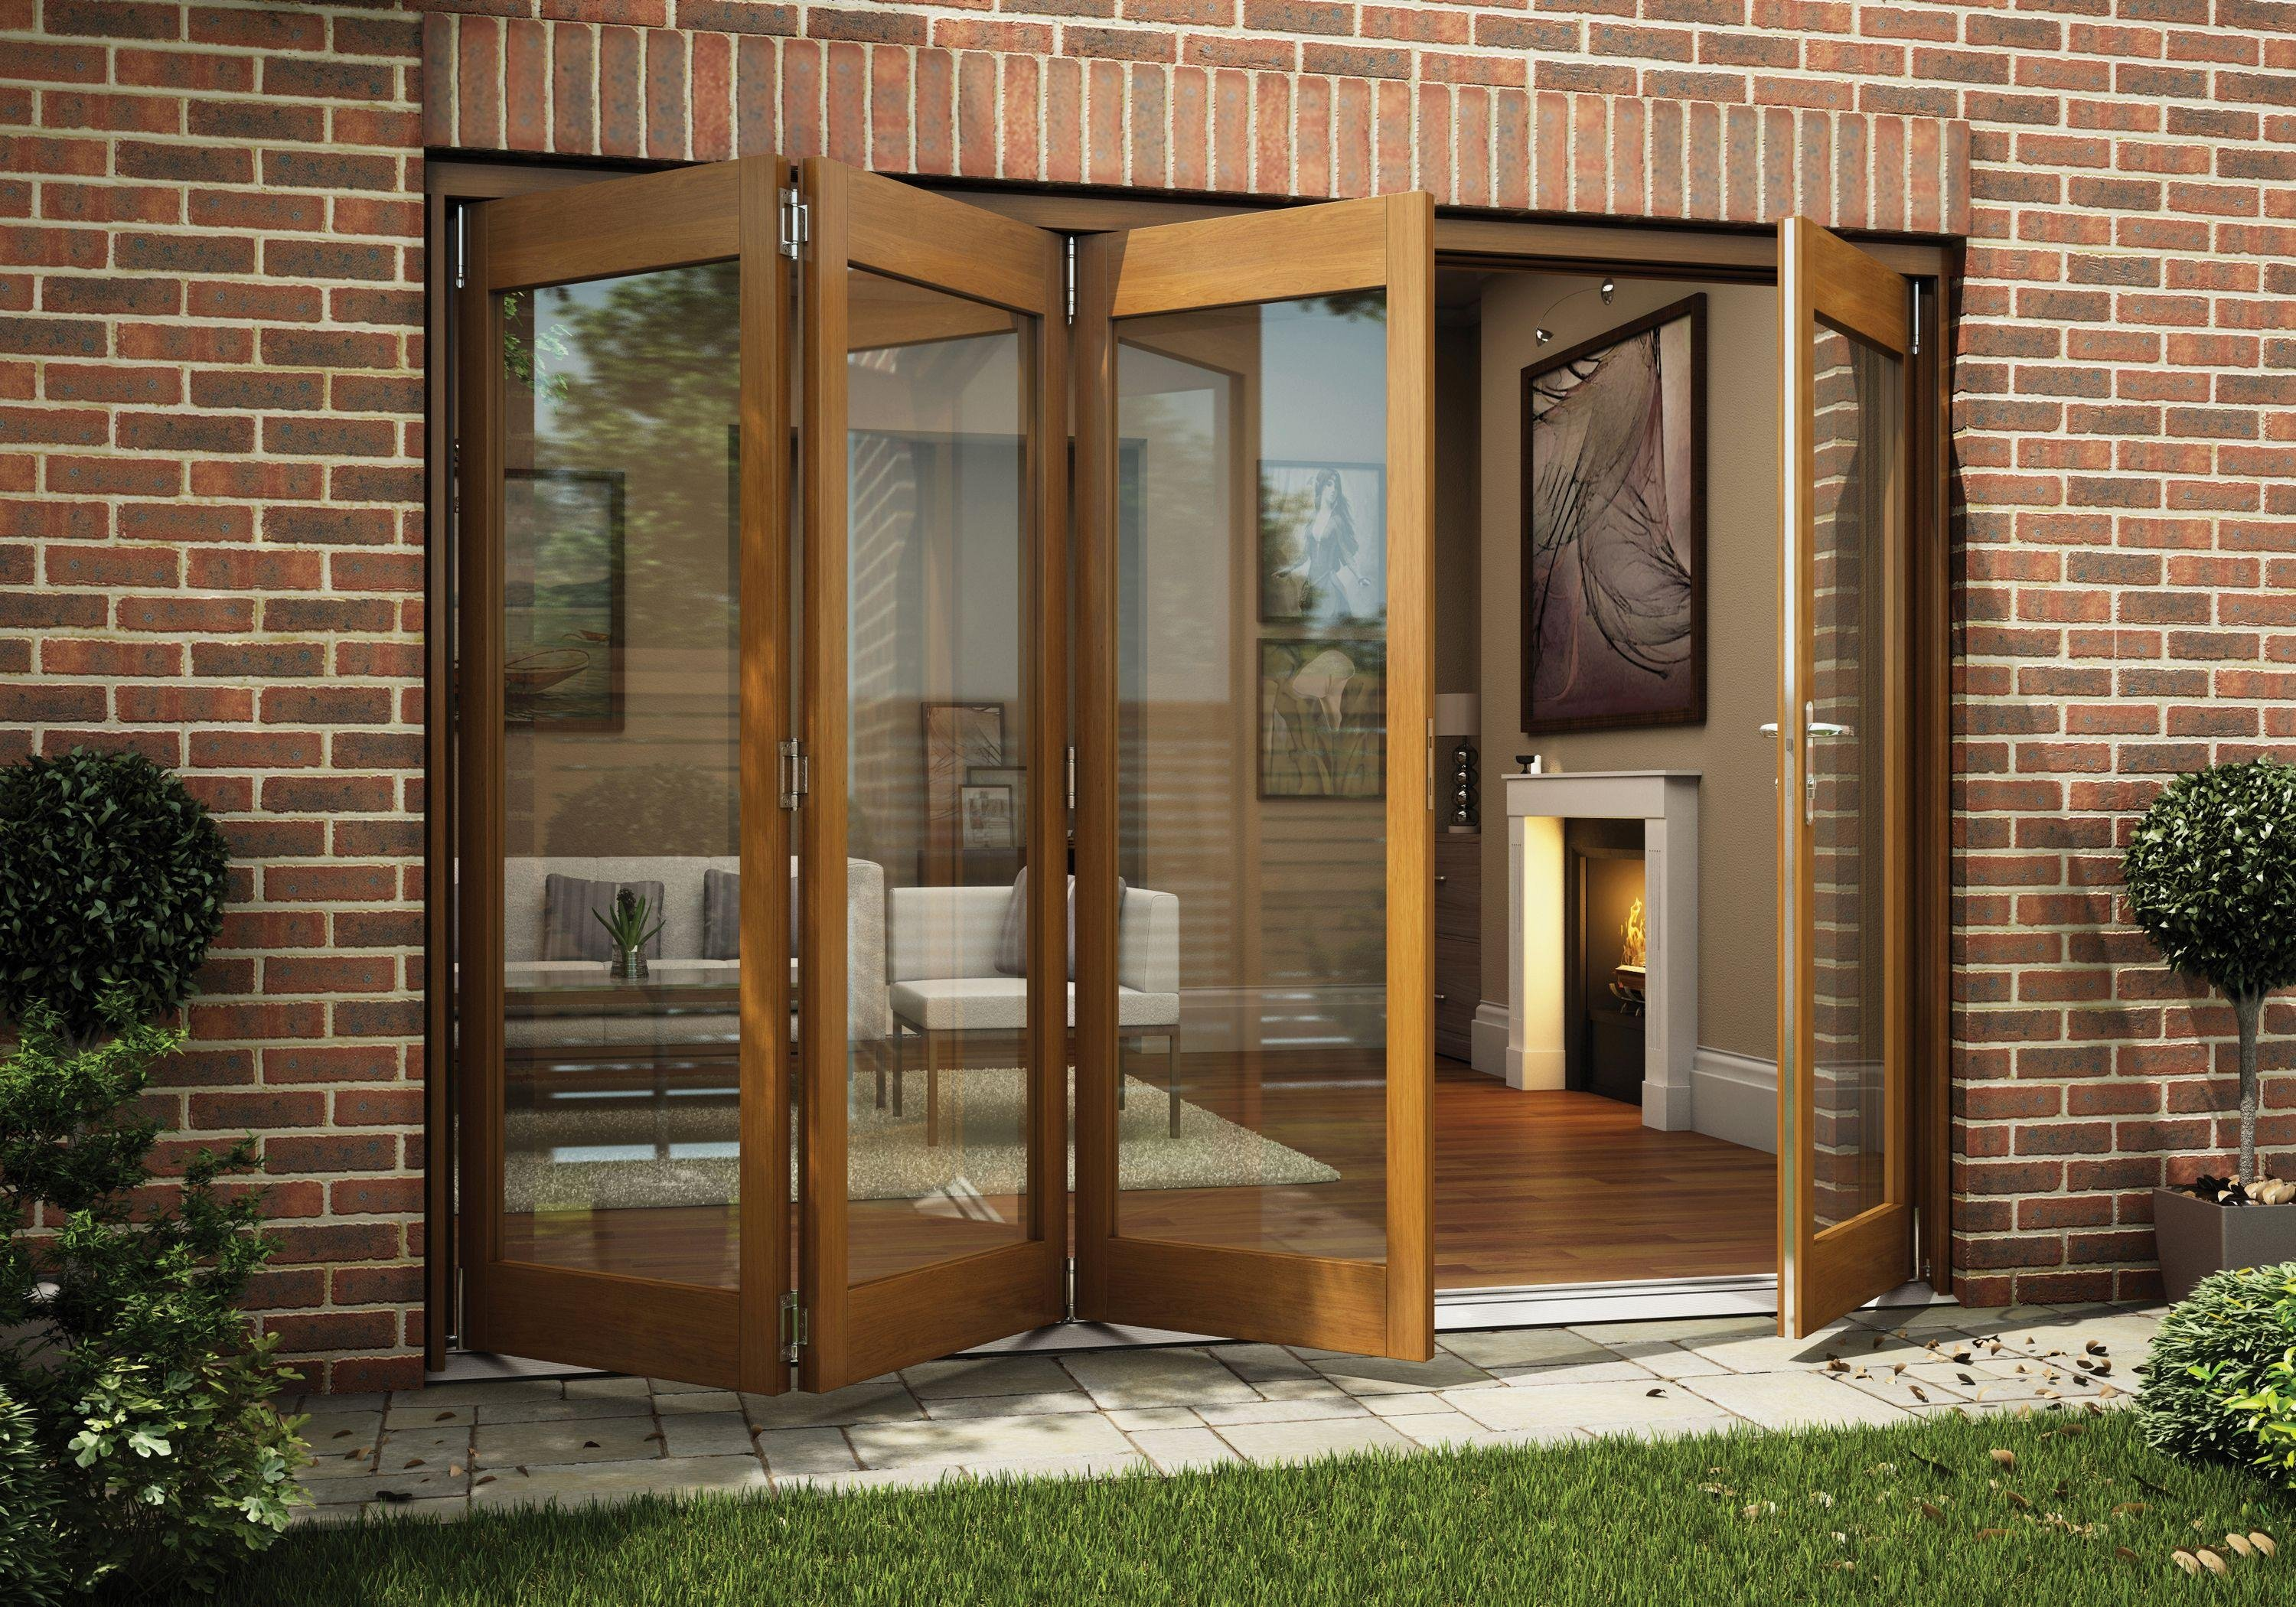 jeld-wen-oak-veneer-folding-patio-door-set-2105-x-3005mm